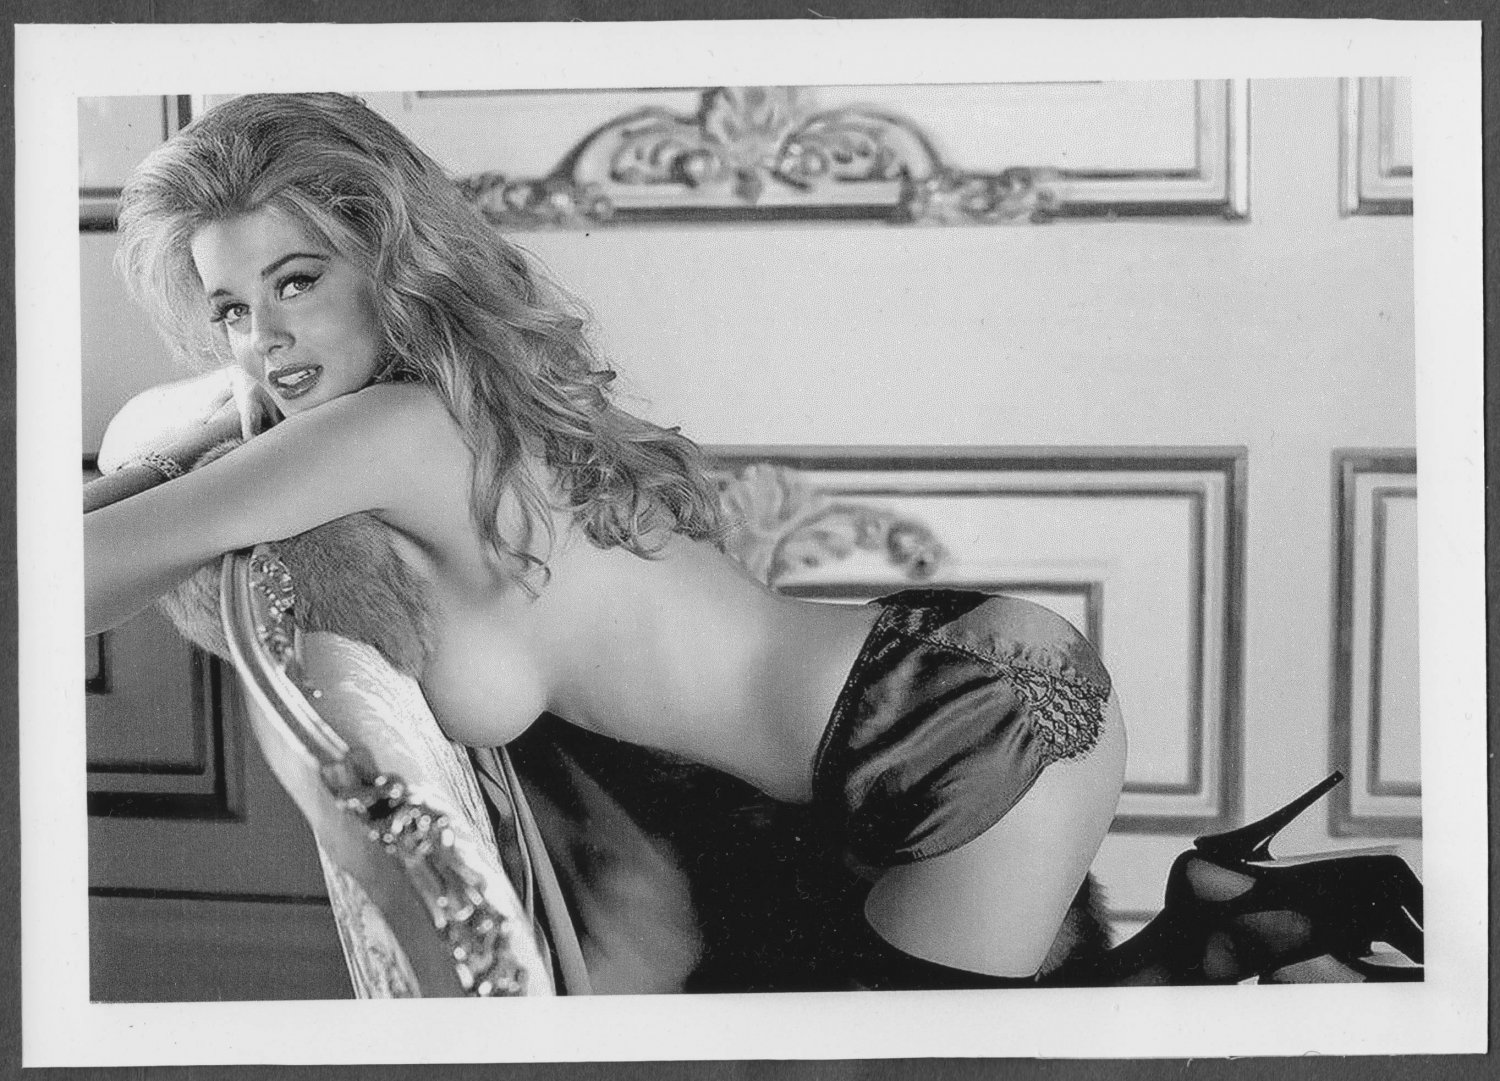 ACTRESS ANN MARGRET TOPLESS BUSTY BOSOMY SIDEVIEW POSE 5X7 REPRINT #36